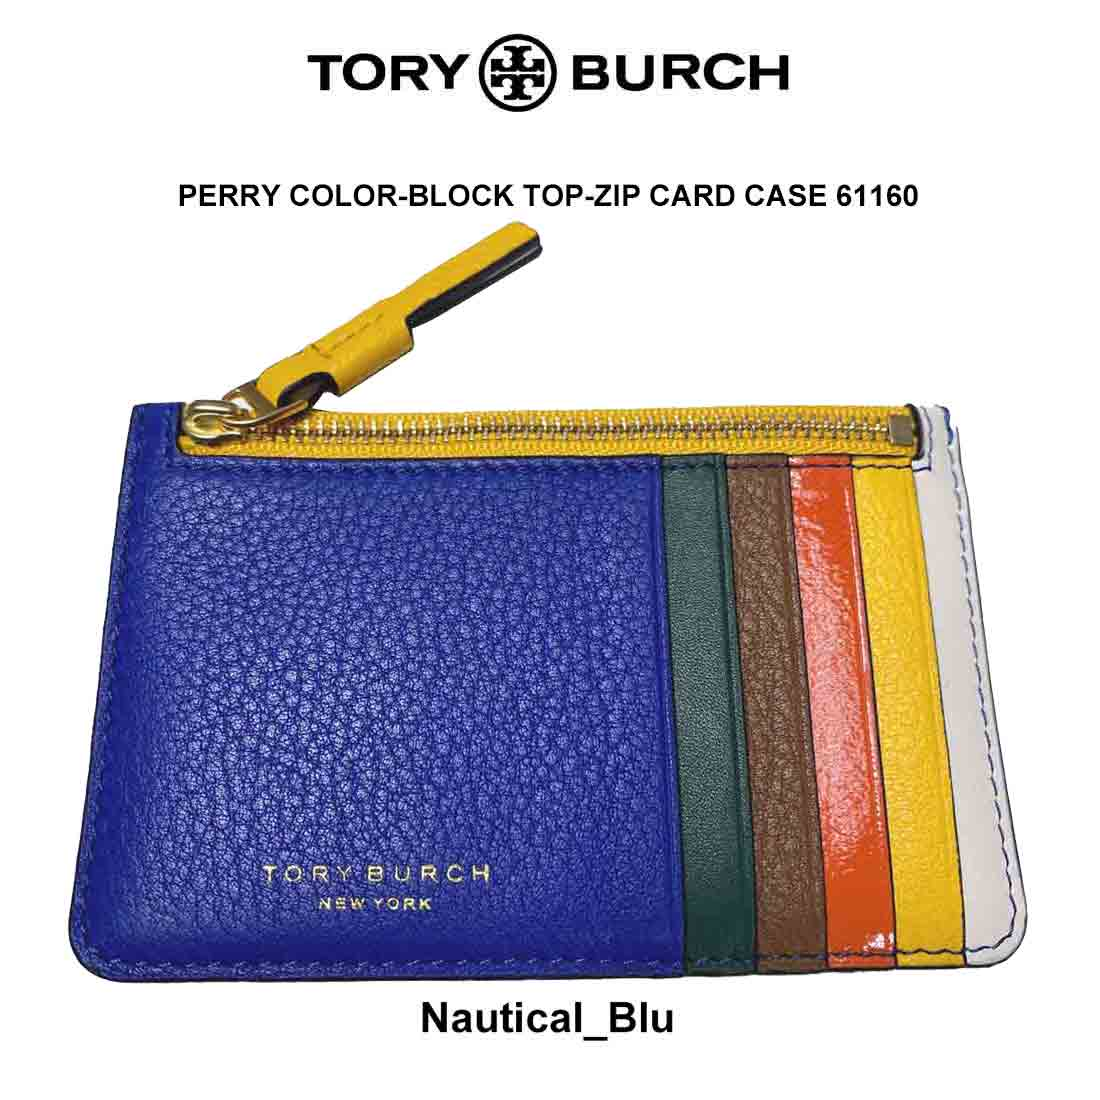 TORY BURCH(トリーバーチ)カードケース 定期入れ PERRY COLOR-BLOCK TOP-ZIP CARD CASE 61160